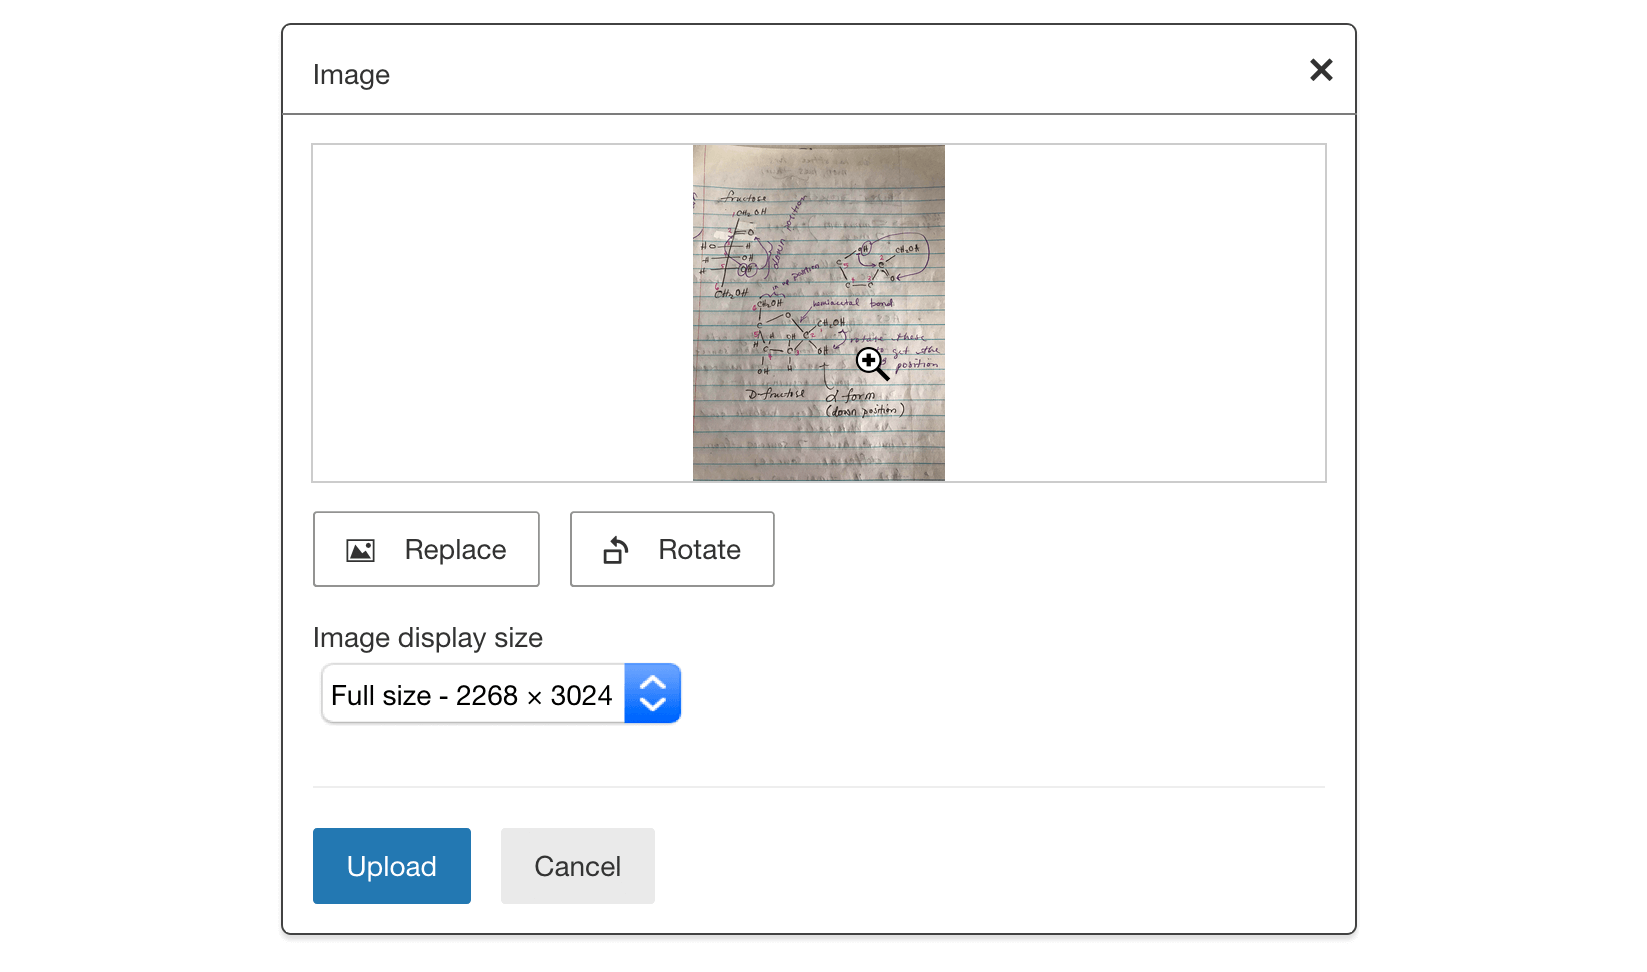 Student can choose to replace, rotate, and change the image display size before uploading their image to the essay response.